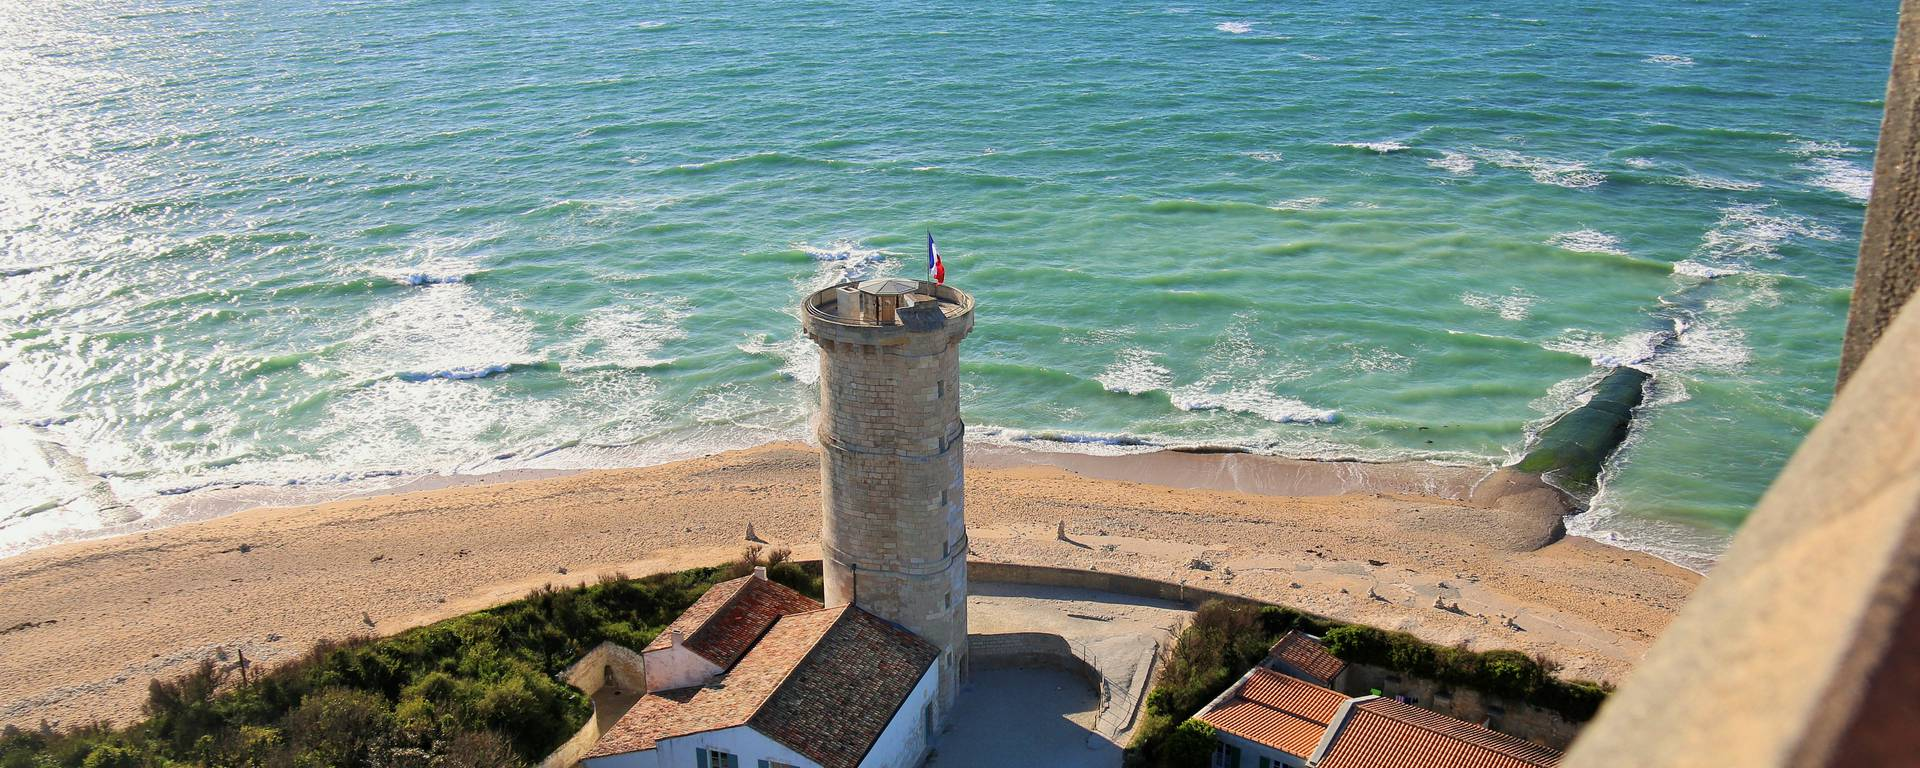 Le phare des Baleines, Tour Vauban par Lesley Williamson